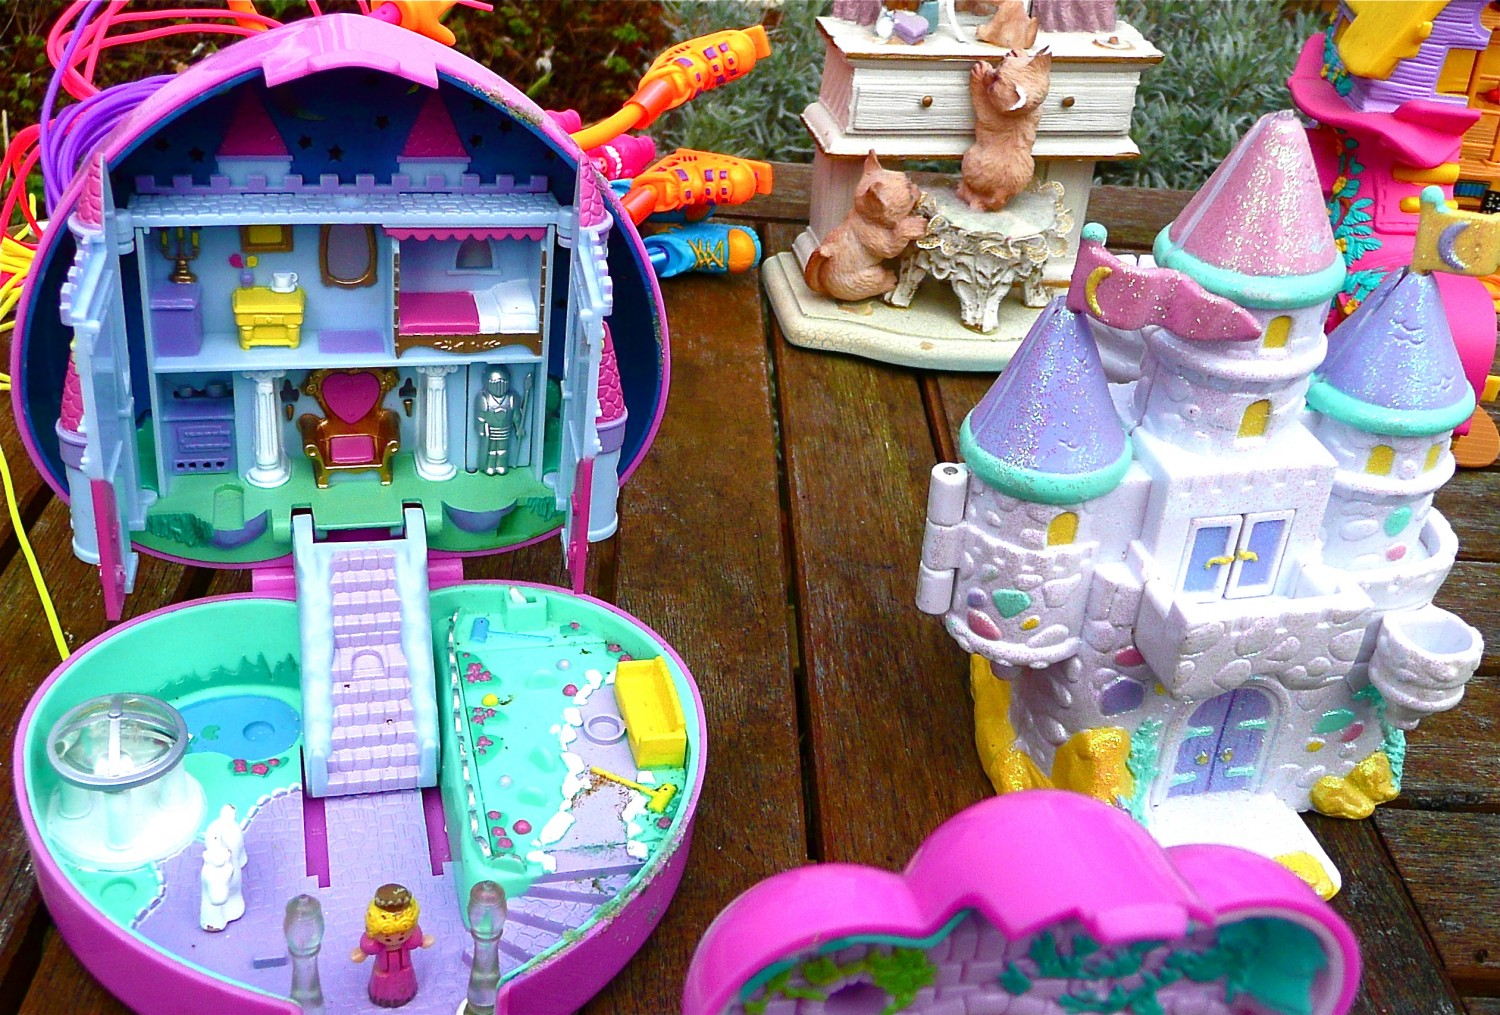 Polly Pockets!